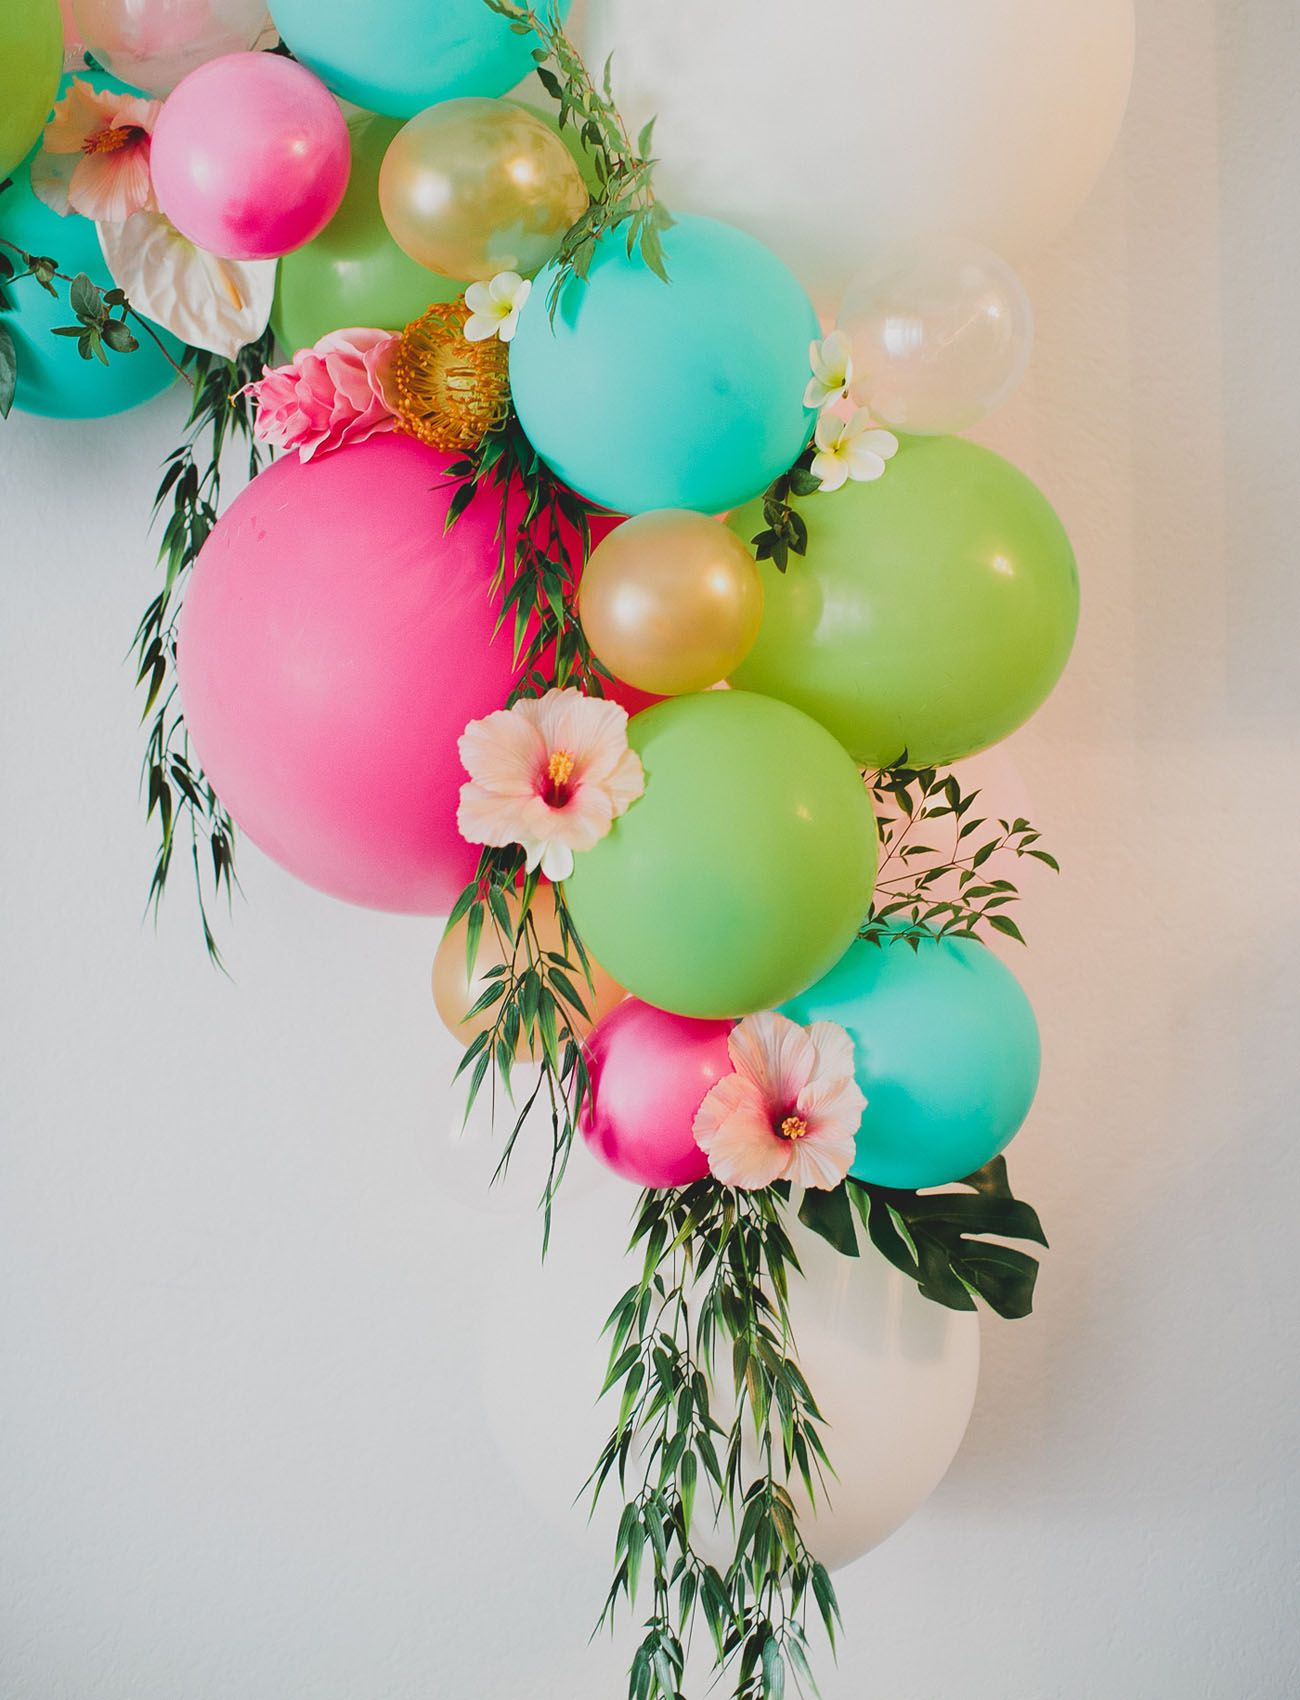 Decoration Anniversaire Hawaii Diy Floral Balloon Arch Wedding Diy Ideas Diy Ideas For